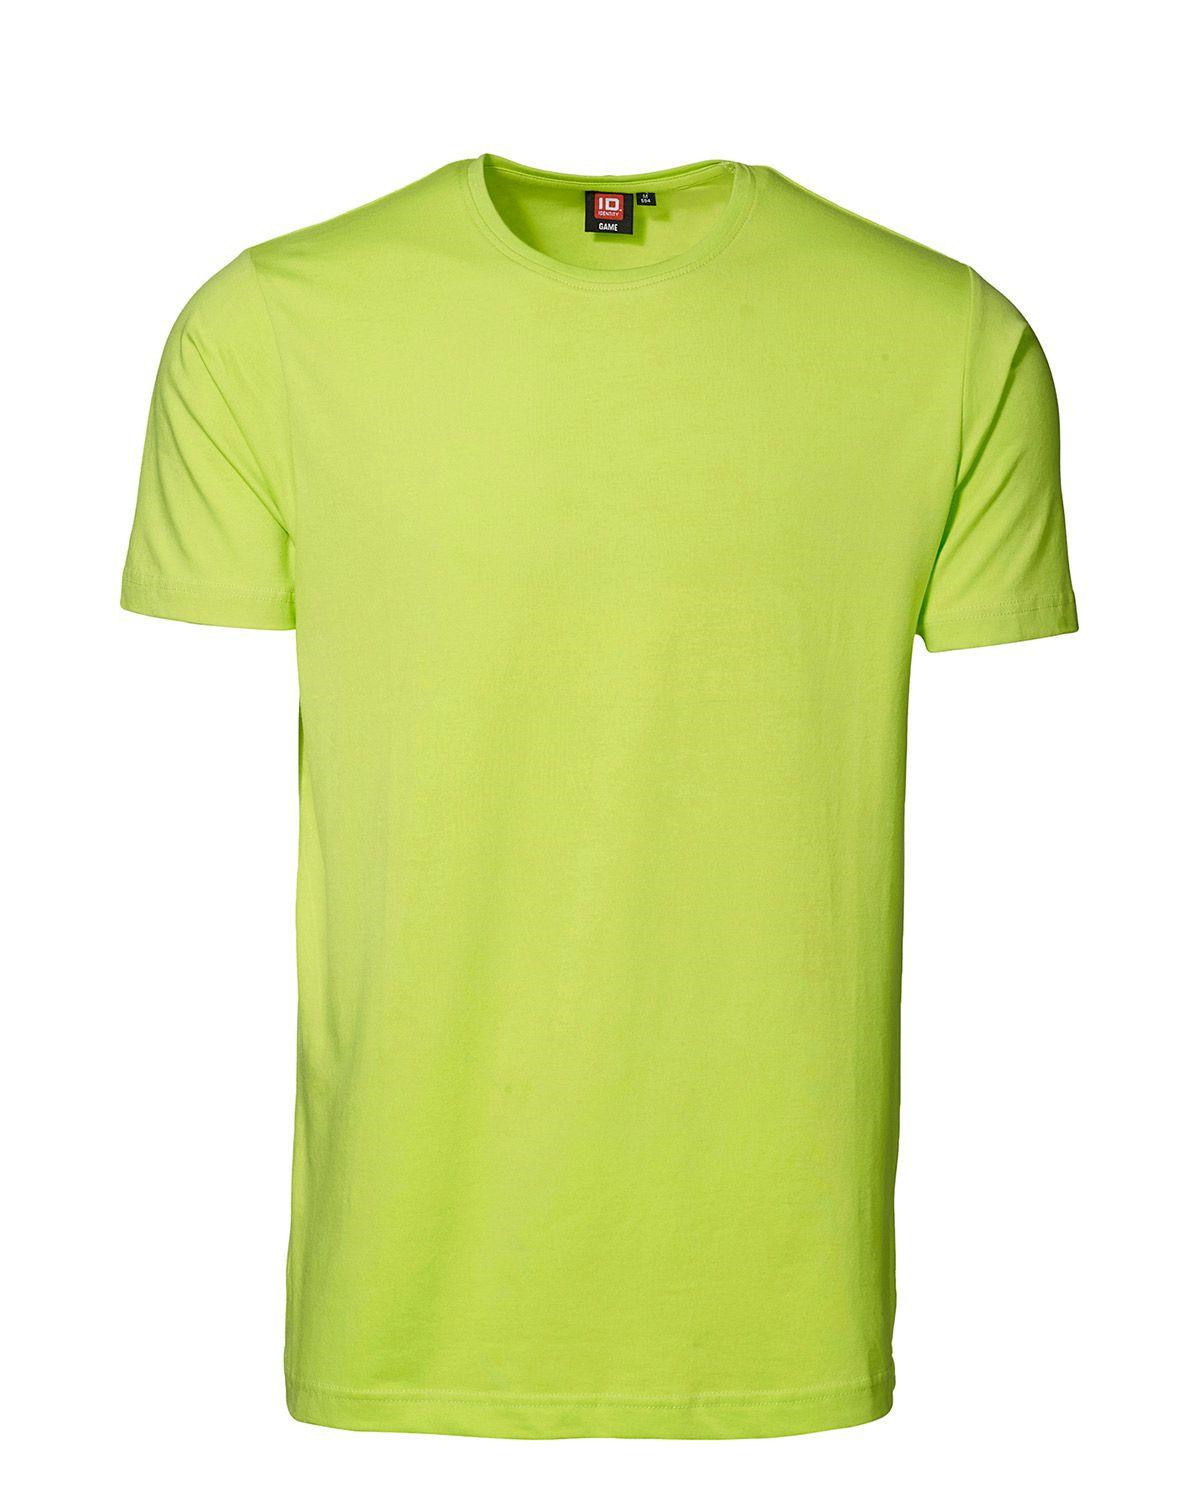 ID Stretch T-shirt (Lime, M)